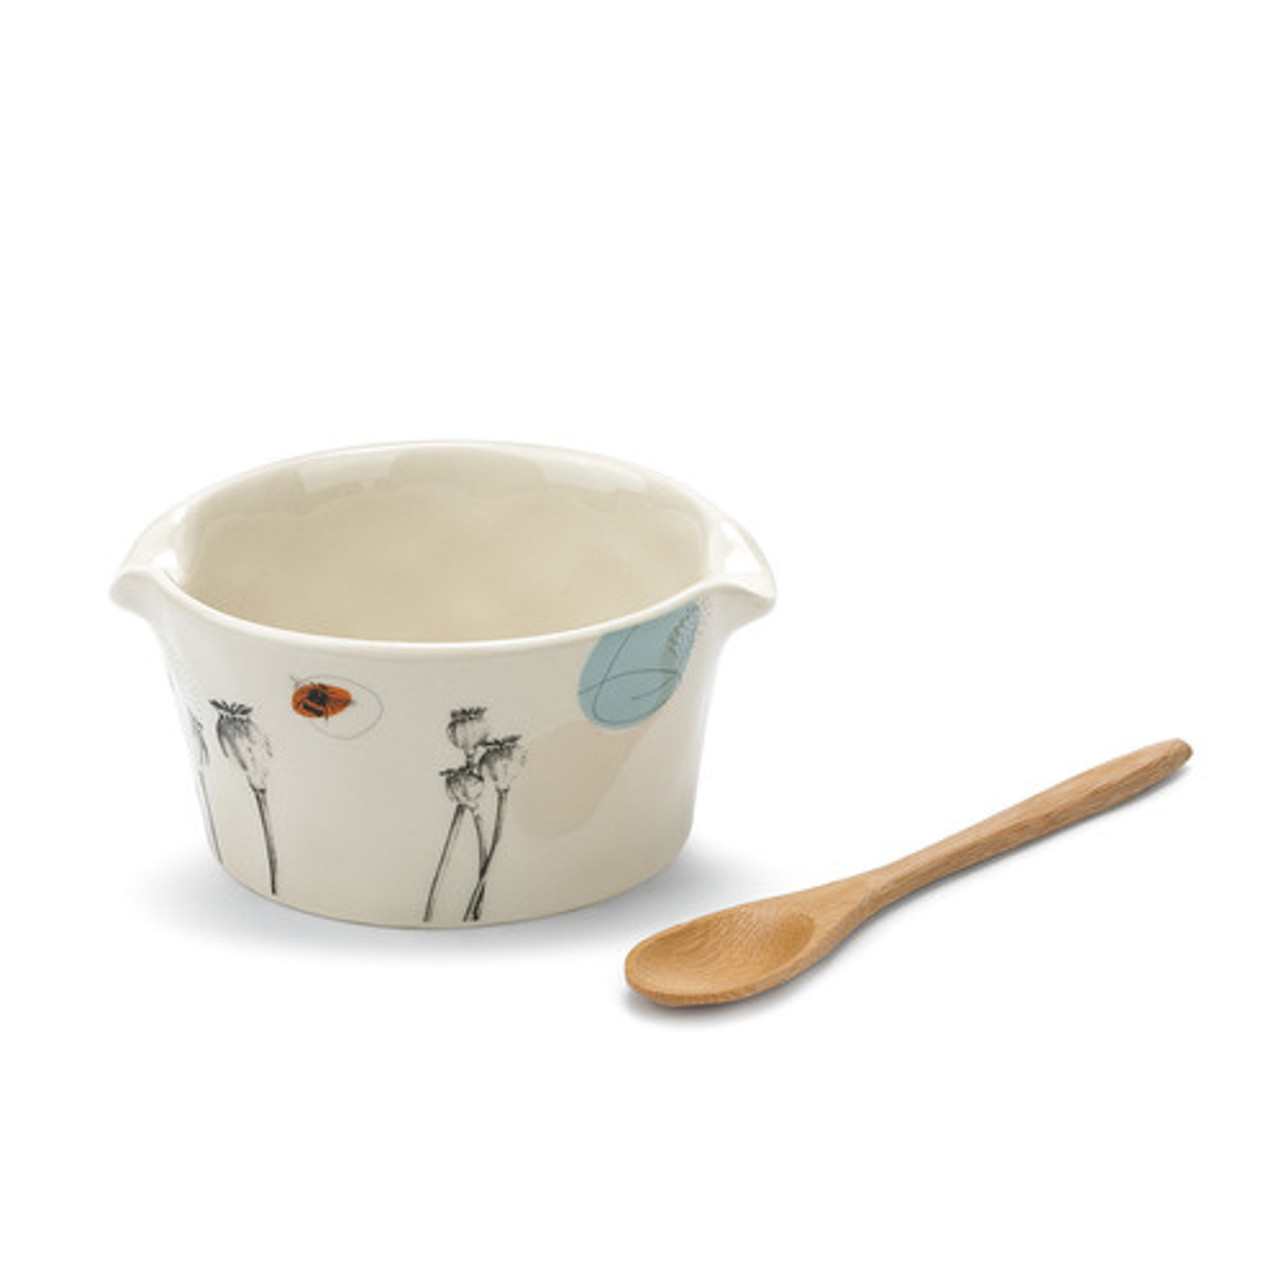 Give the Nibbles Appetizer Bowl with Spoon to a cook or hostess in your life who likes to make things fun, to add little bits of humor wherever possible. Great for Thanksgiving, Christmas, or anytime. You can also buy this bowl for yourself.